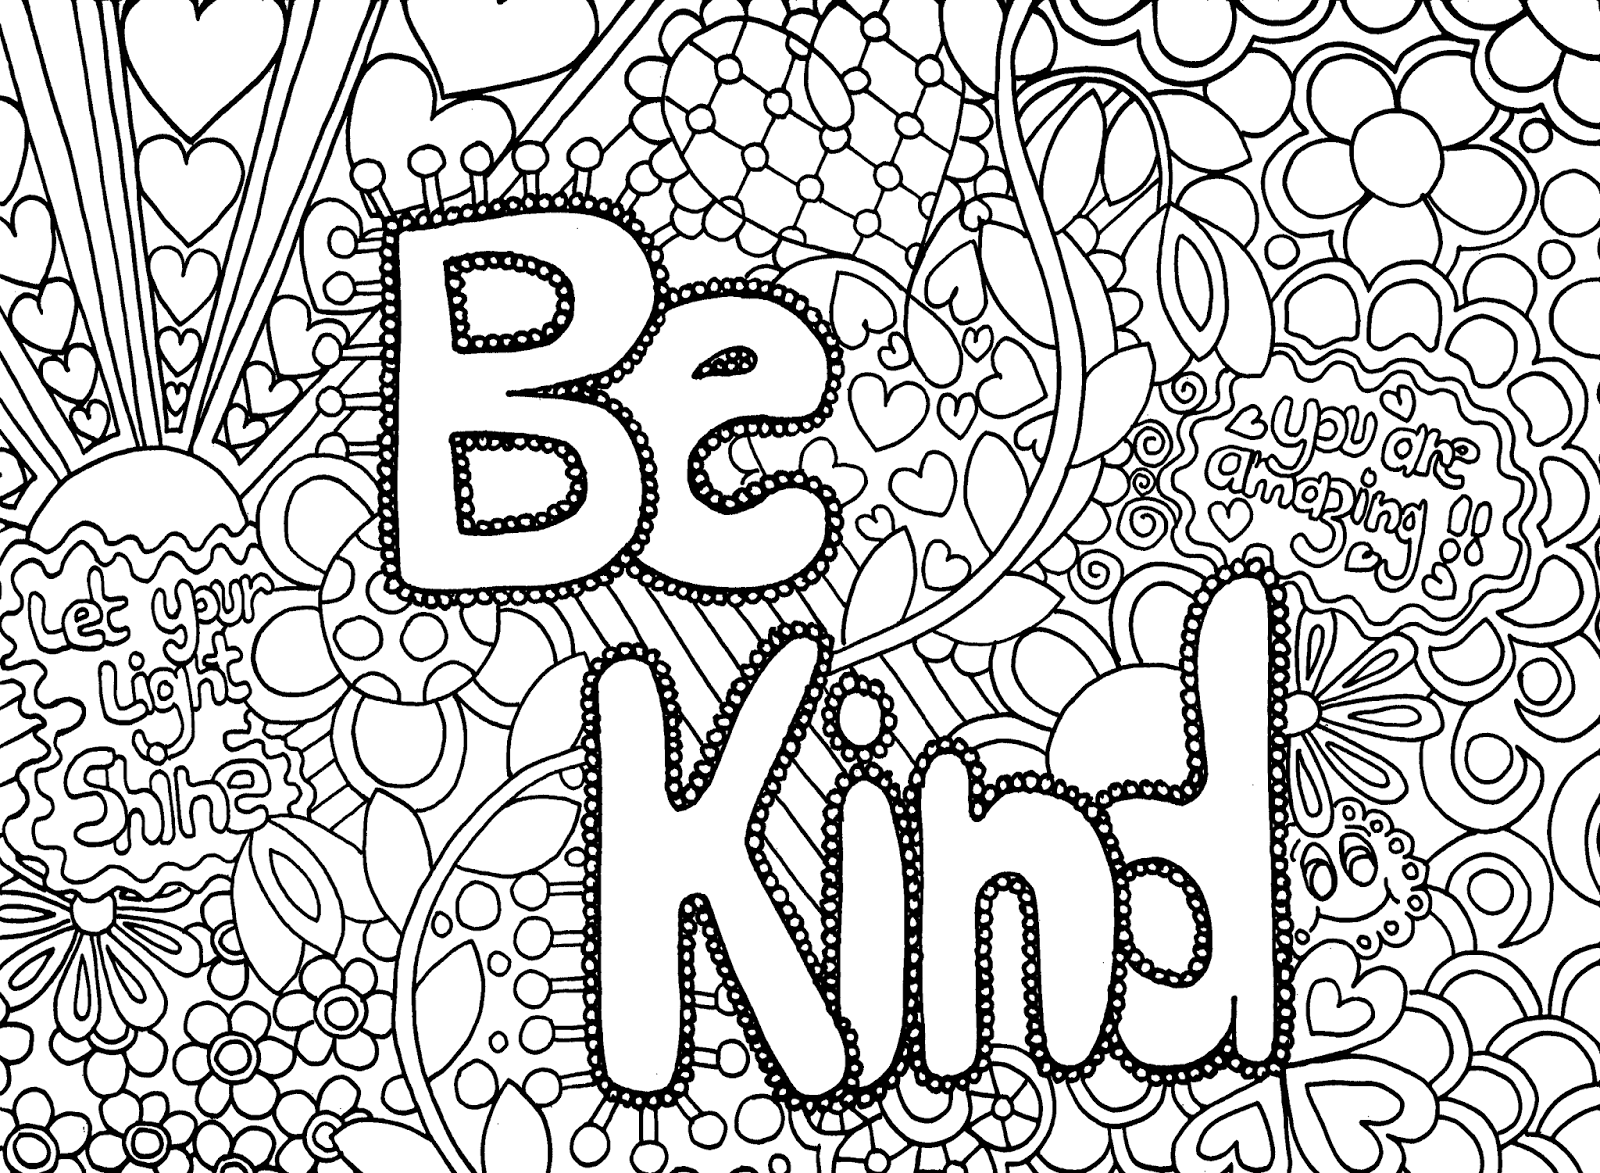 Printable Adult Coloring Sheets 12809